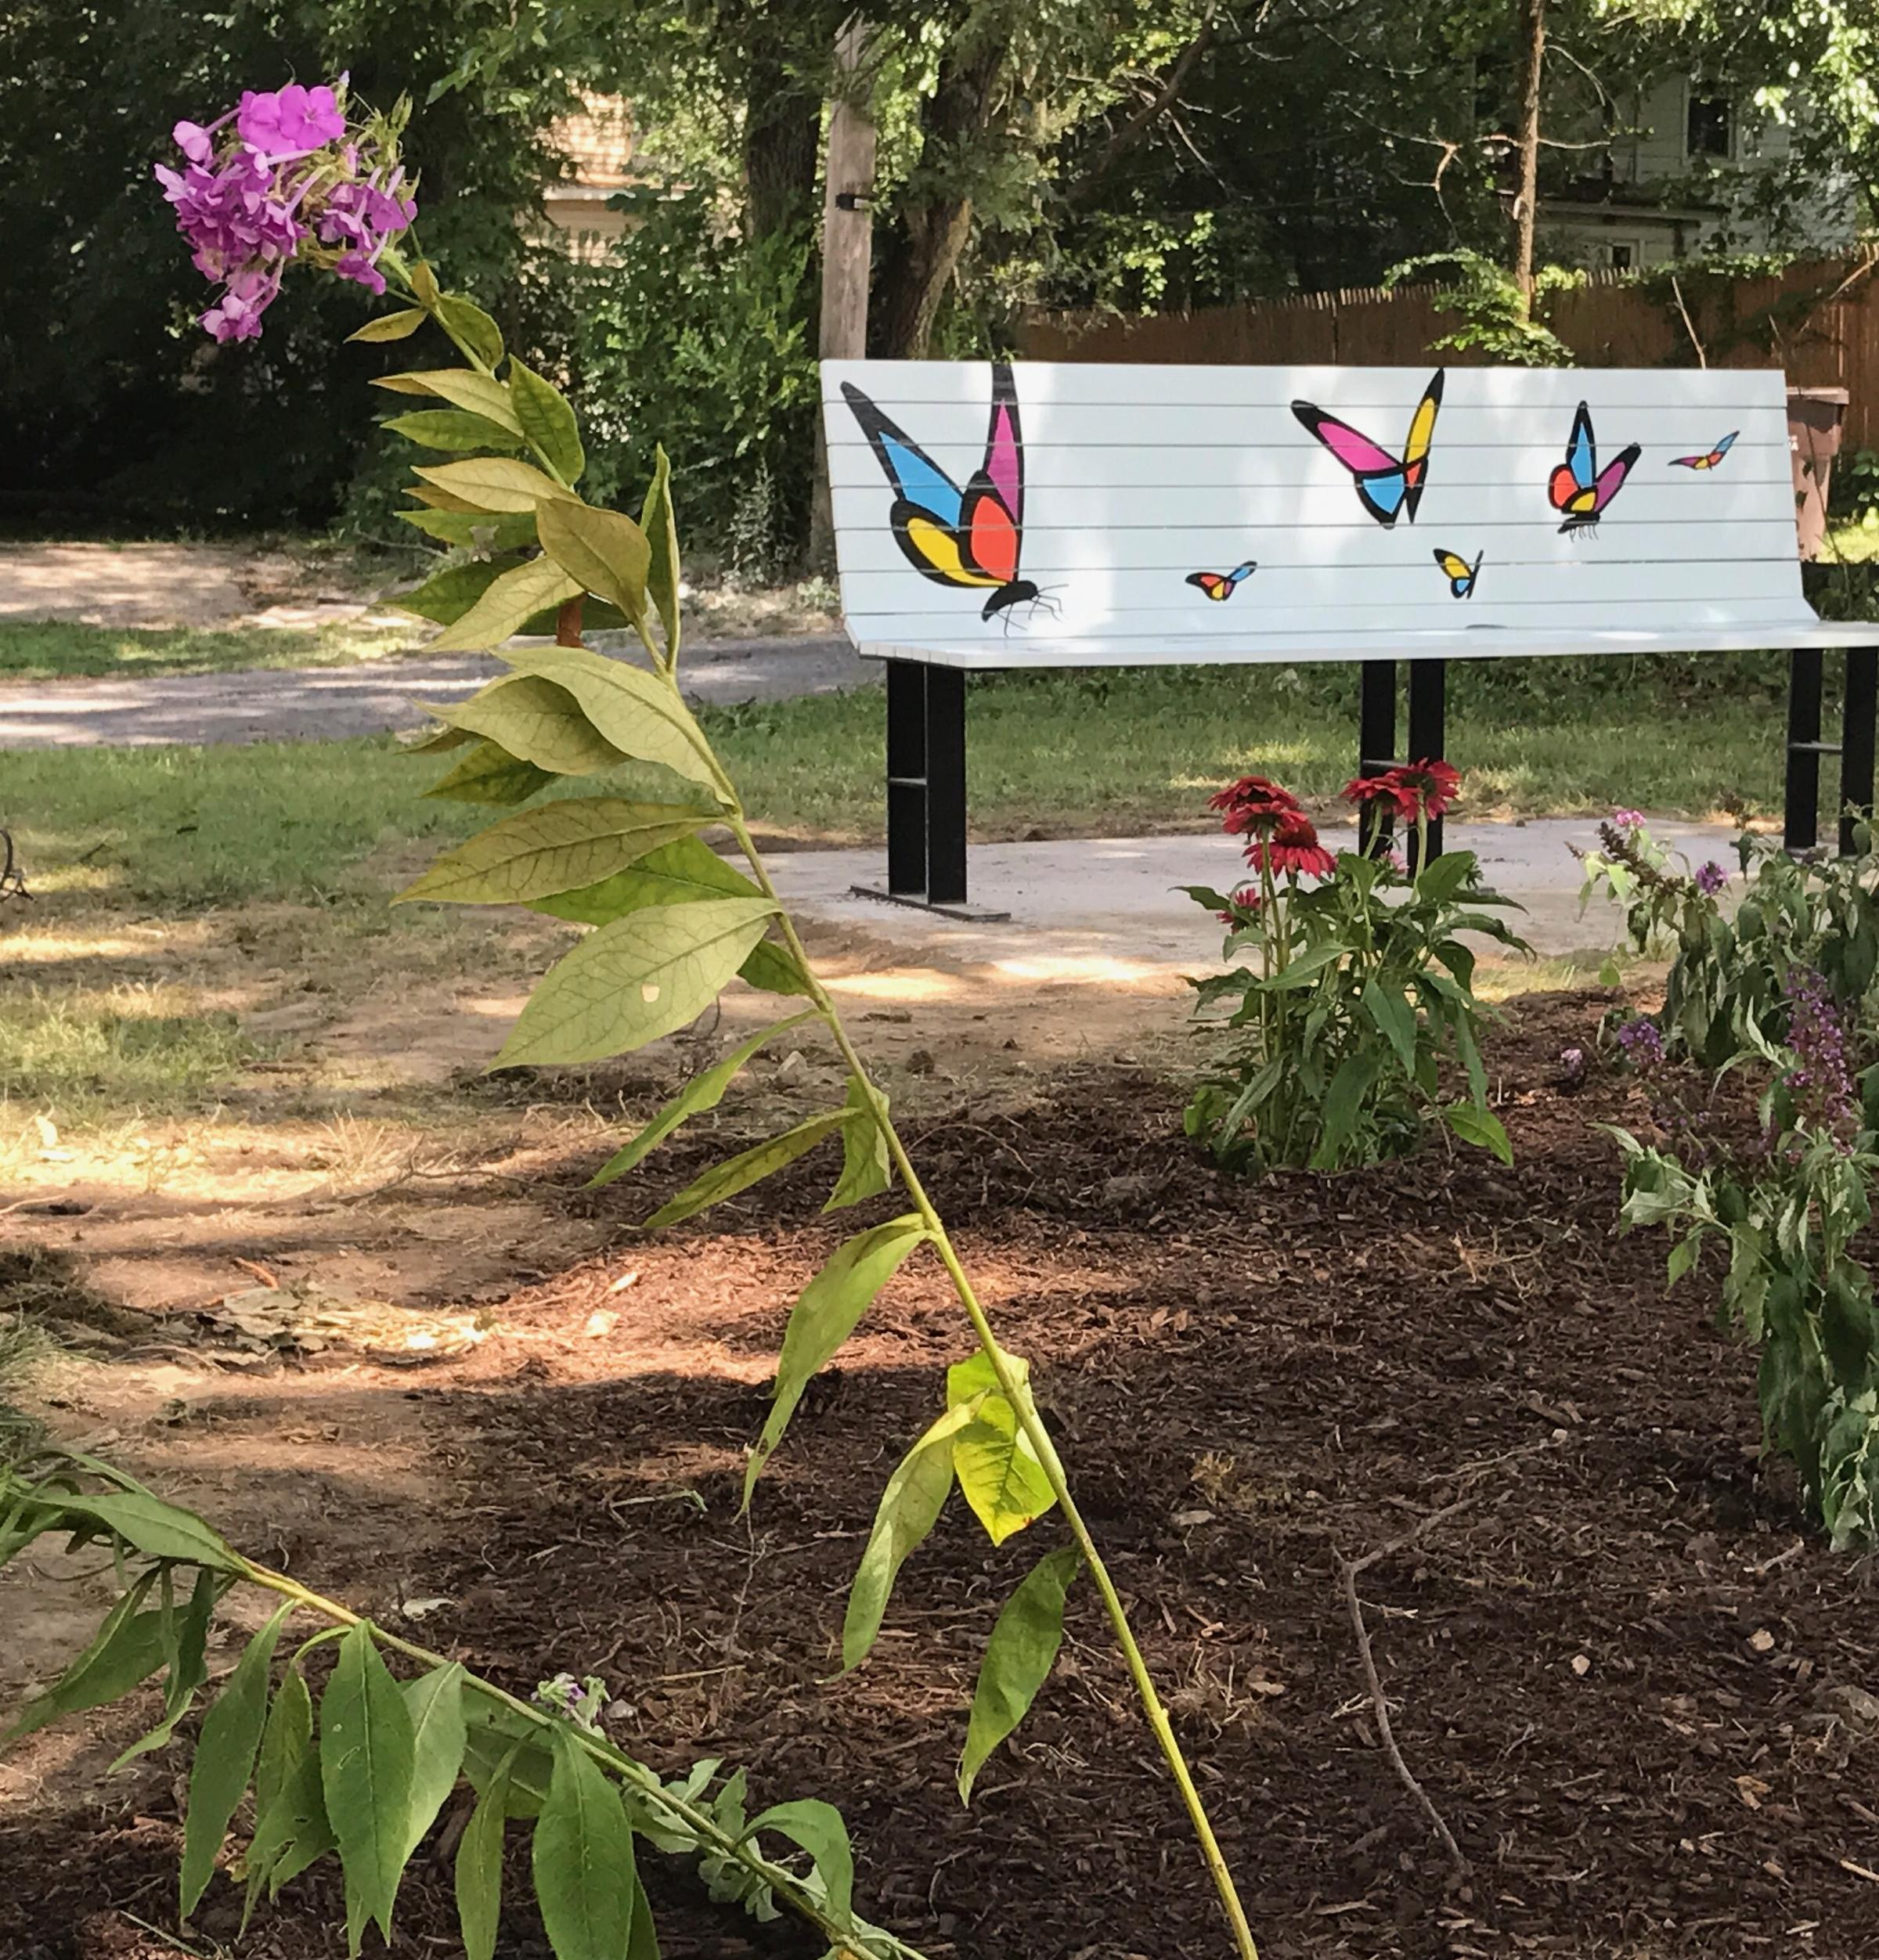 East Bluff Garden Designed to be a Refuge for Monarchs, Neighbors ...